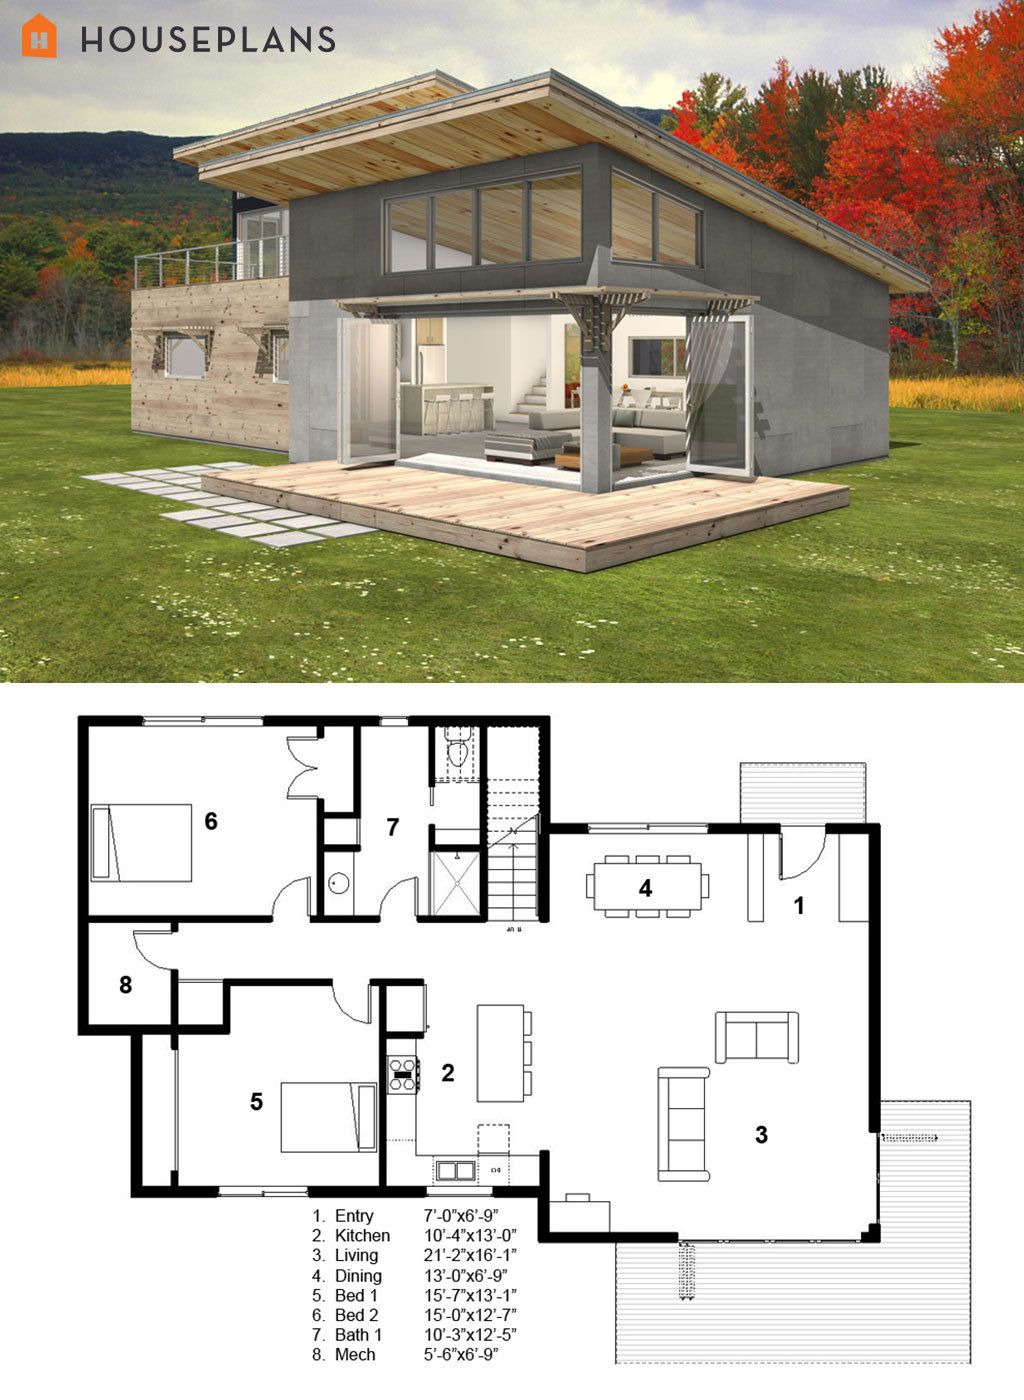 Modern Small House Plans with Photos Fresh Modern Style House Plan 3 Beds 2 Baths 2115 Sq Ft Plan